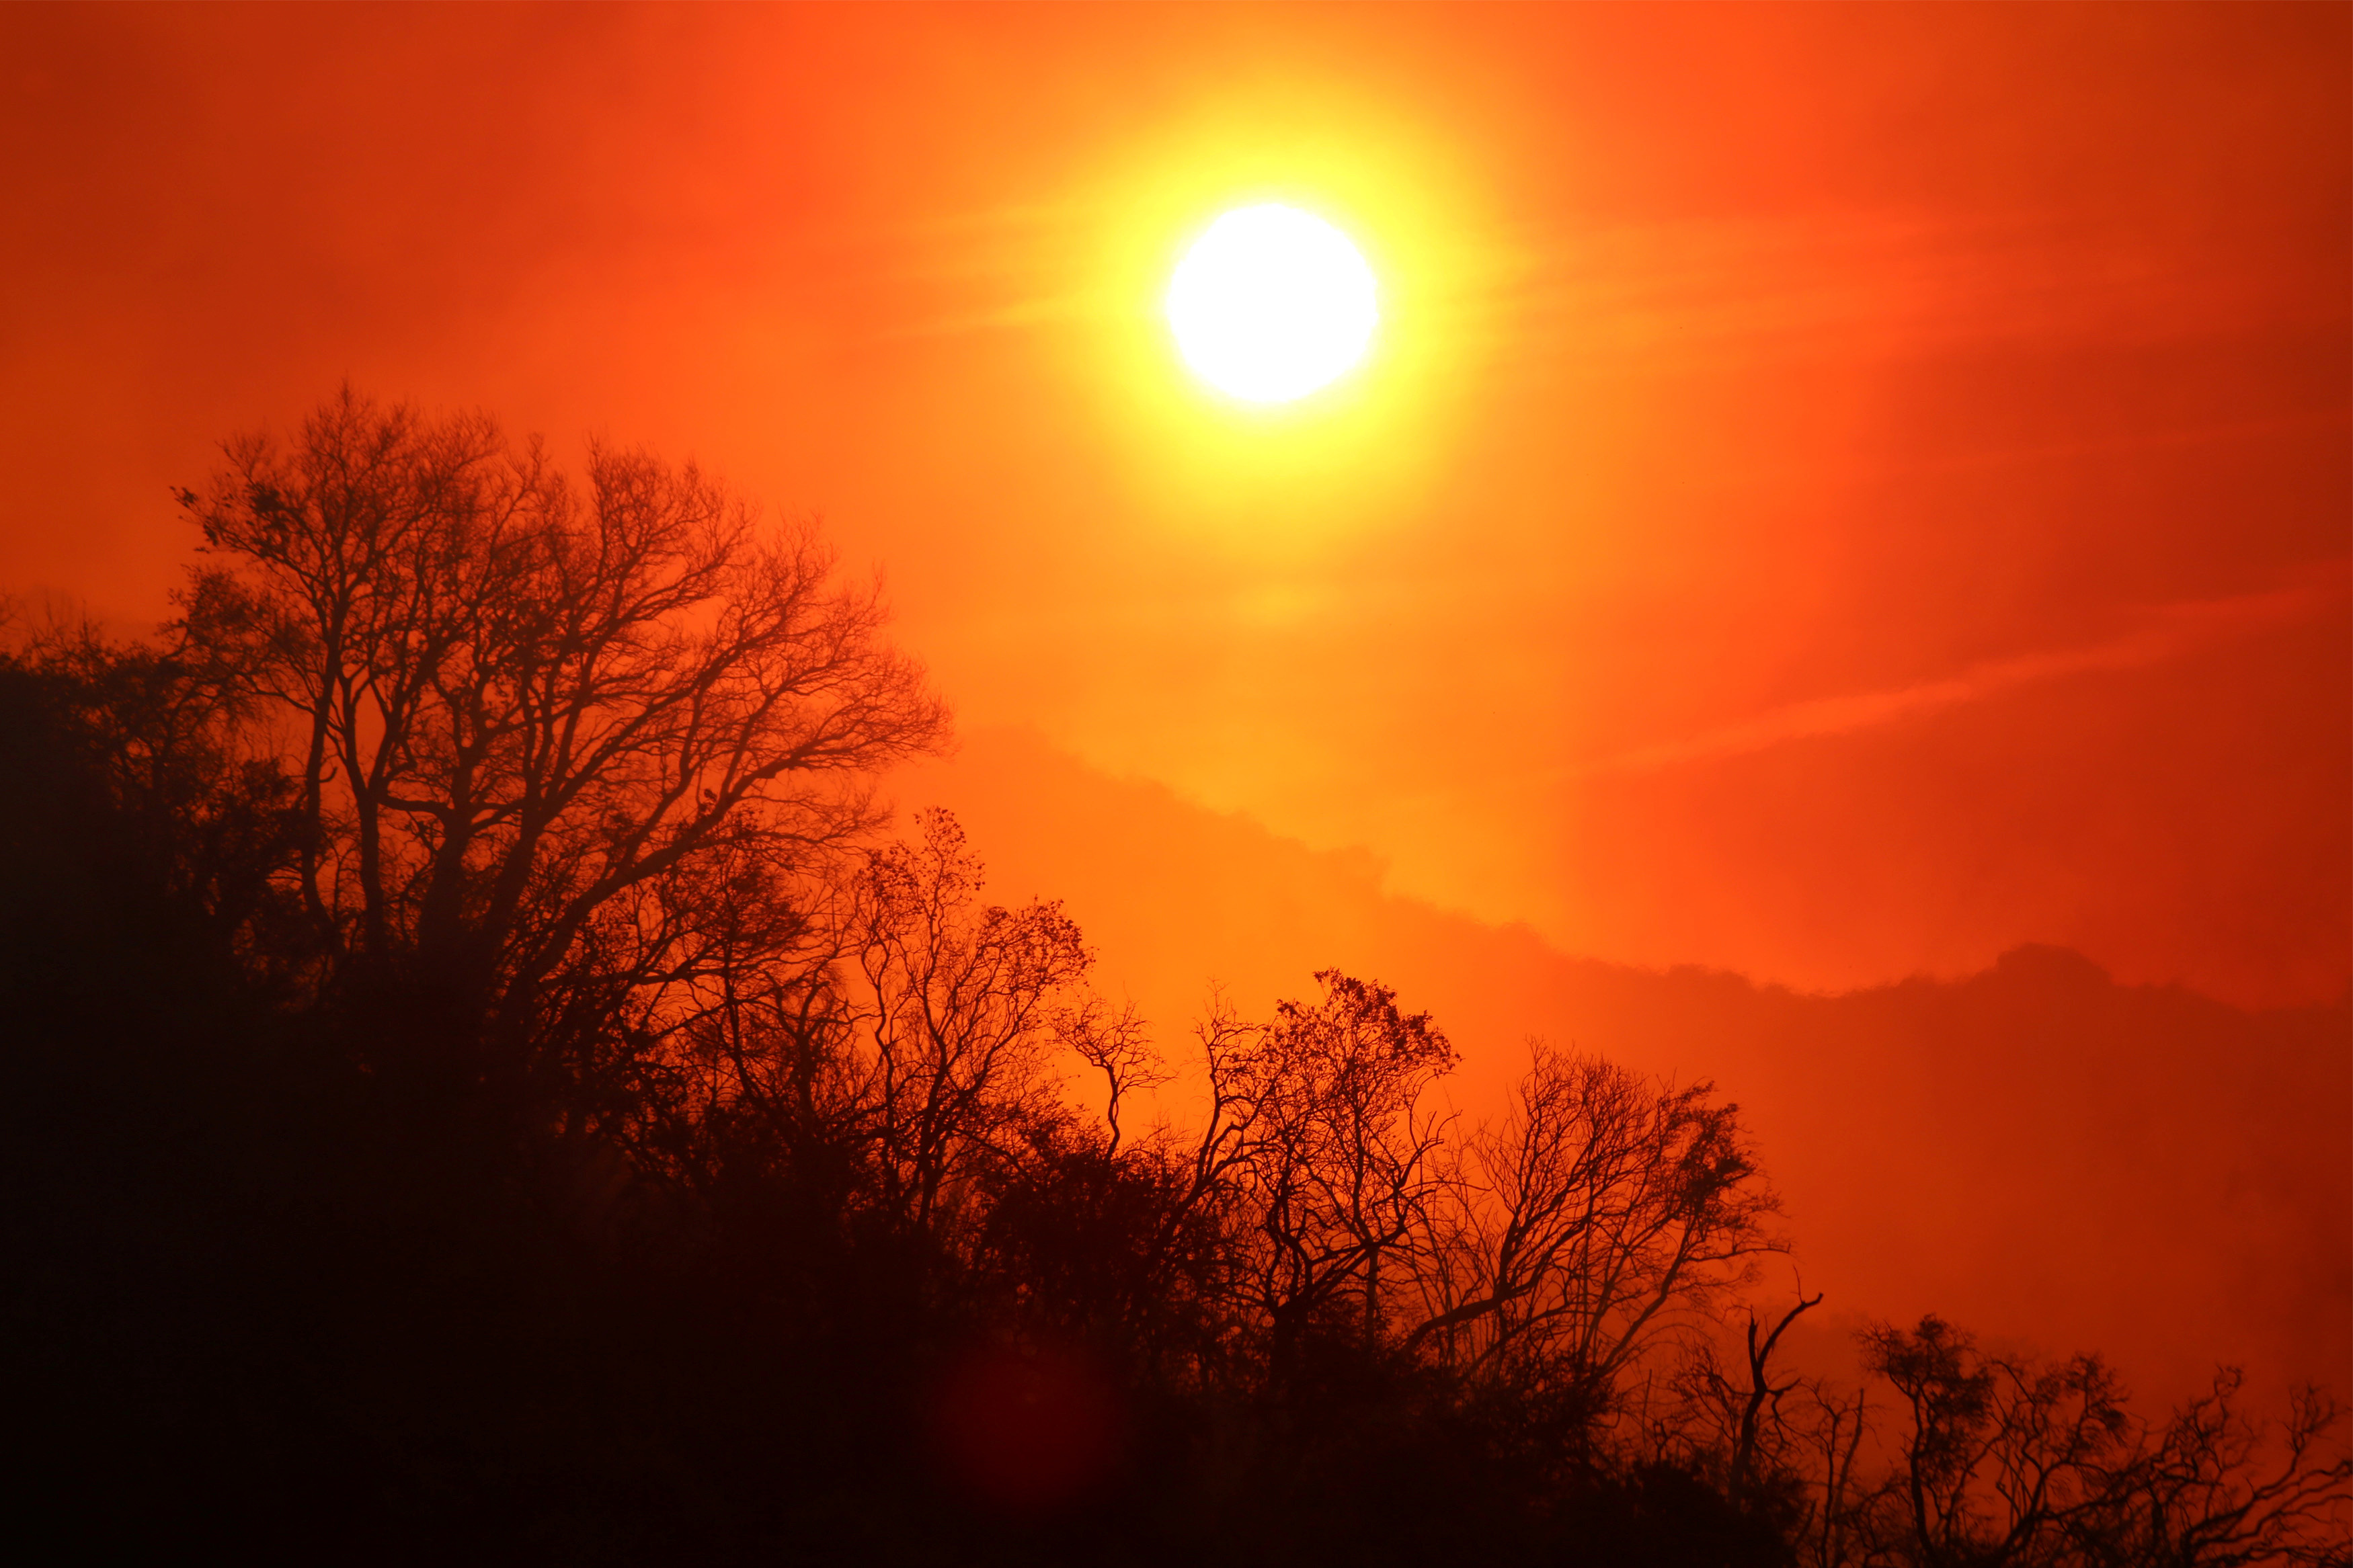 The sun rises over a smoldering landscape that was burned by a wildfire dubbed the Cave Fire, burning in the hills of Santa Barbara, California, U.S., November 26, 2019. REUTERS/David McNew - RC27JD90RMND